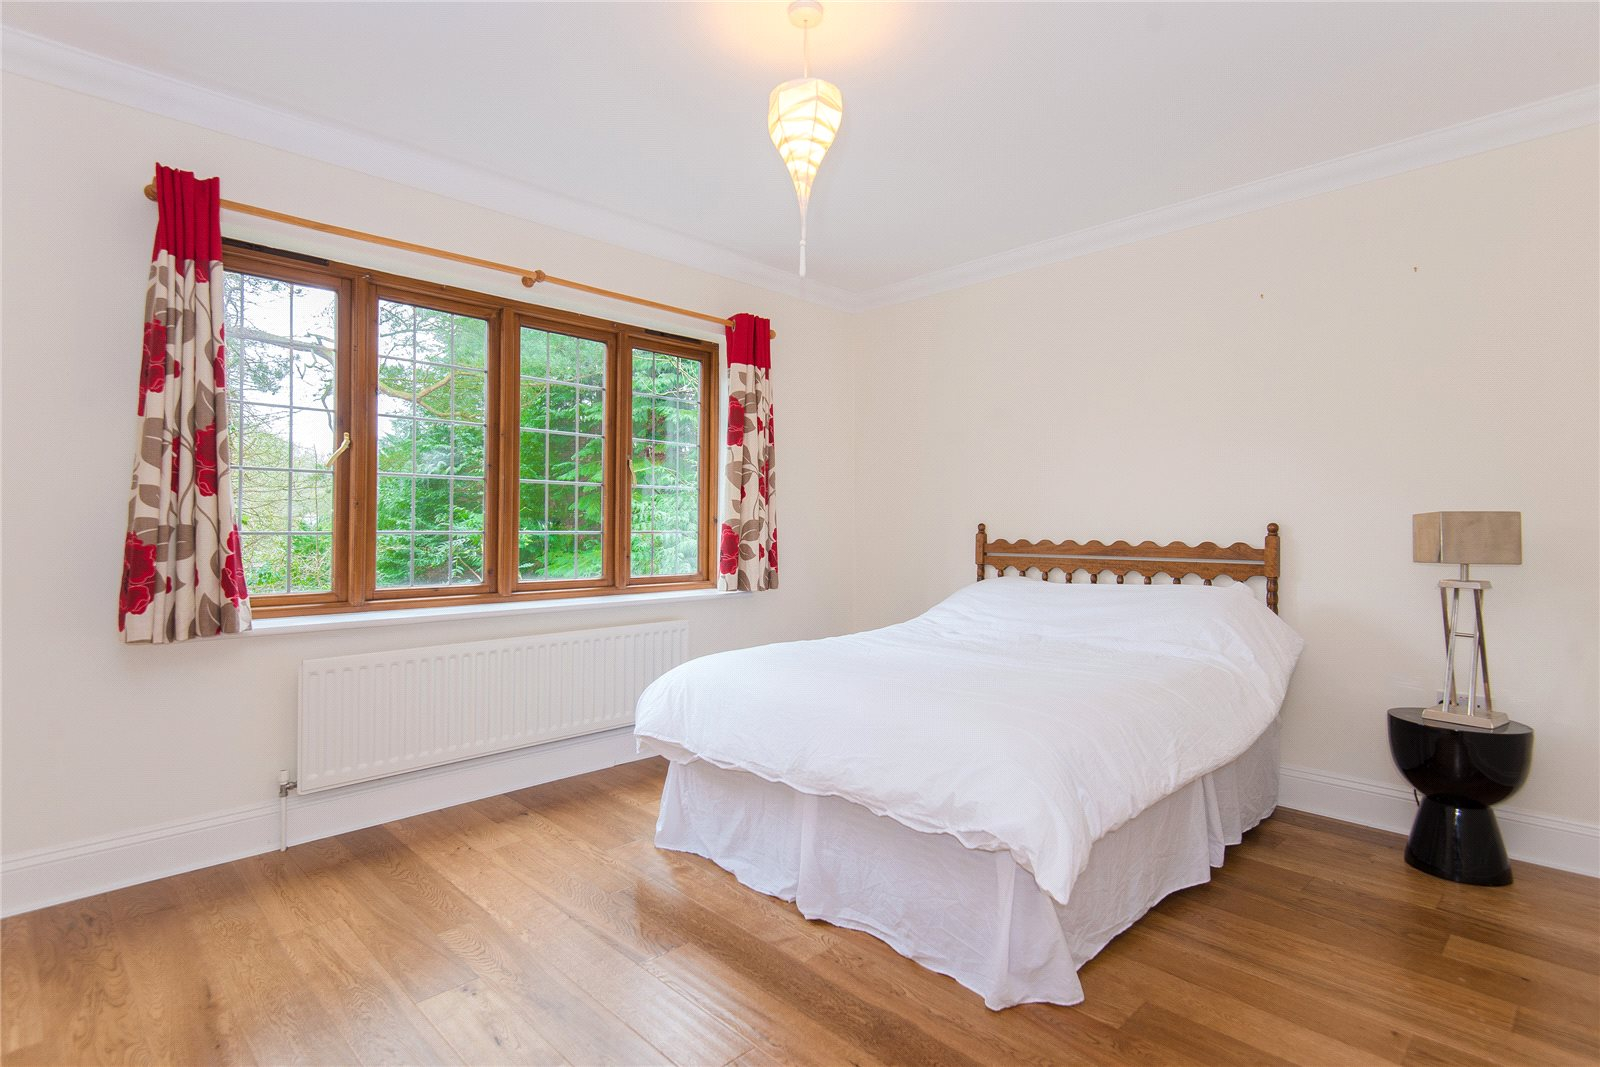 Additional photo for property listing at Deadhearn Lane, Chalfont St Giles, Buckinghamshire, HP8 Chalfont St Giles, 英格蘭